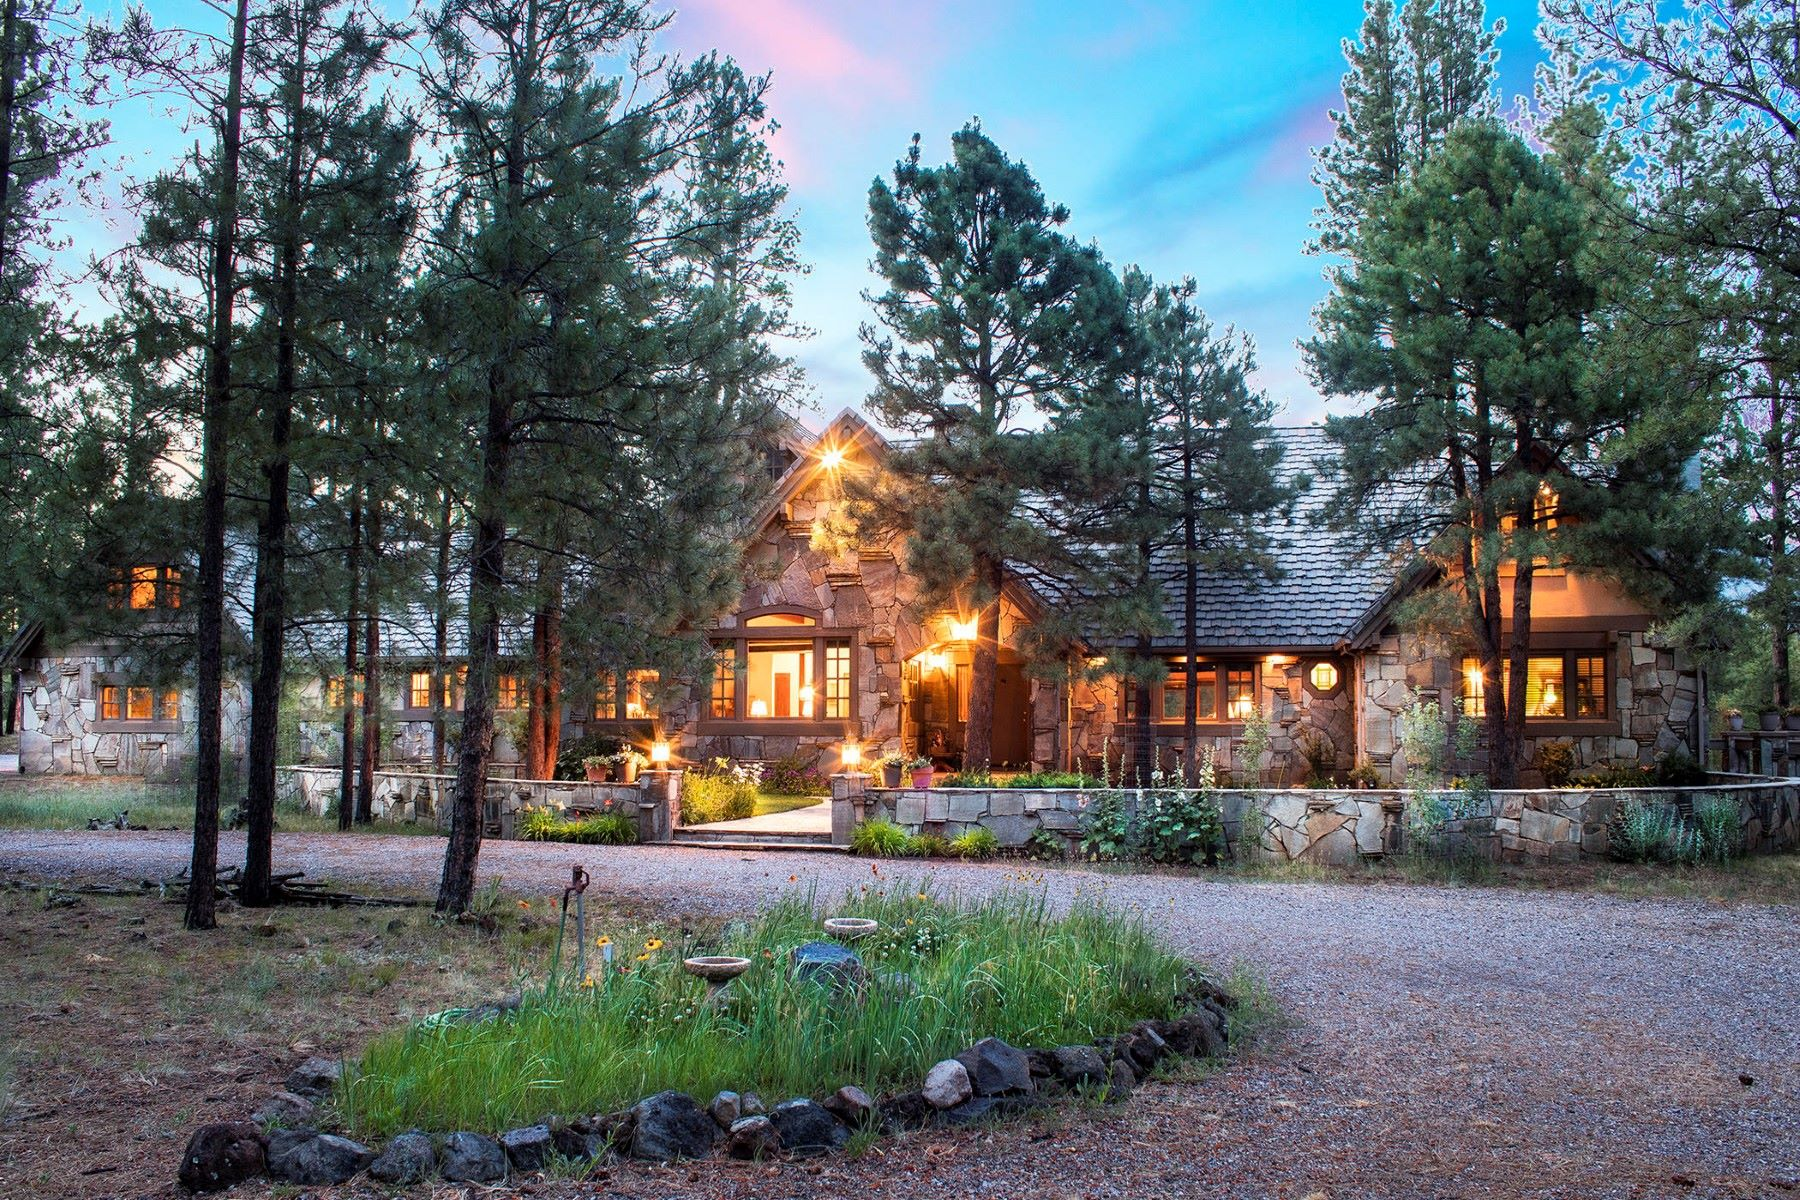 단독 가정 주택 용 매매 에 Extraordinary Land with an exceptional home situated on 26 acres. 4100 Hidden Hollow RD, Flagstaff, 아리조나, 86001 미국